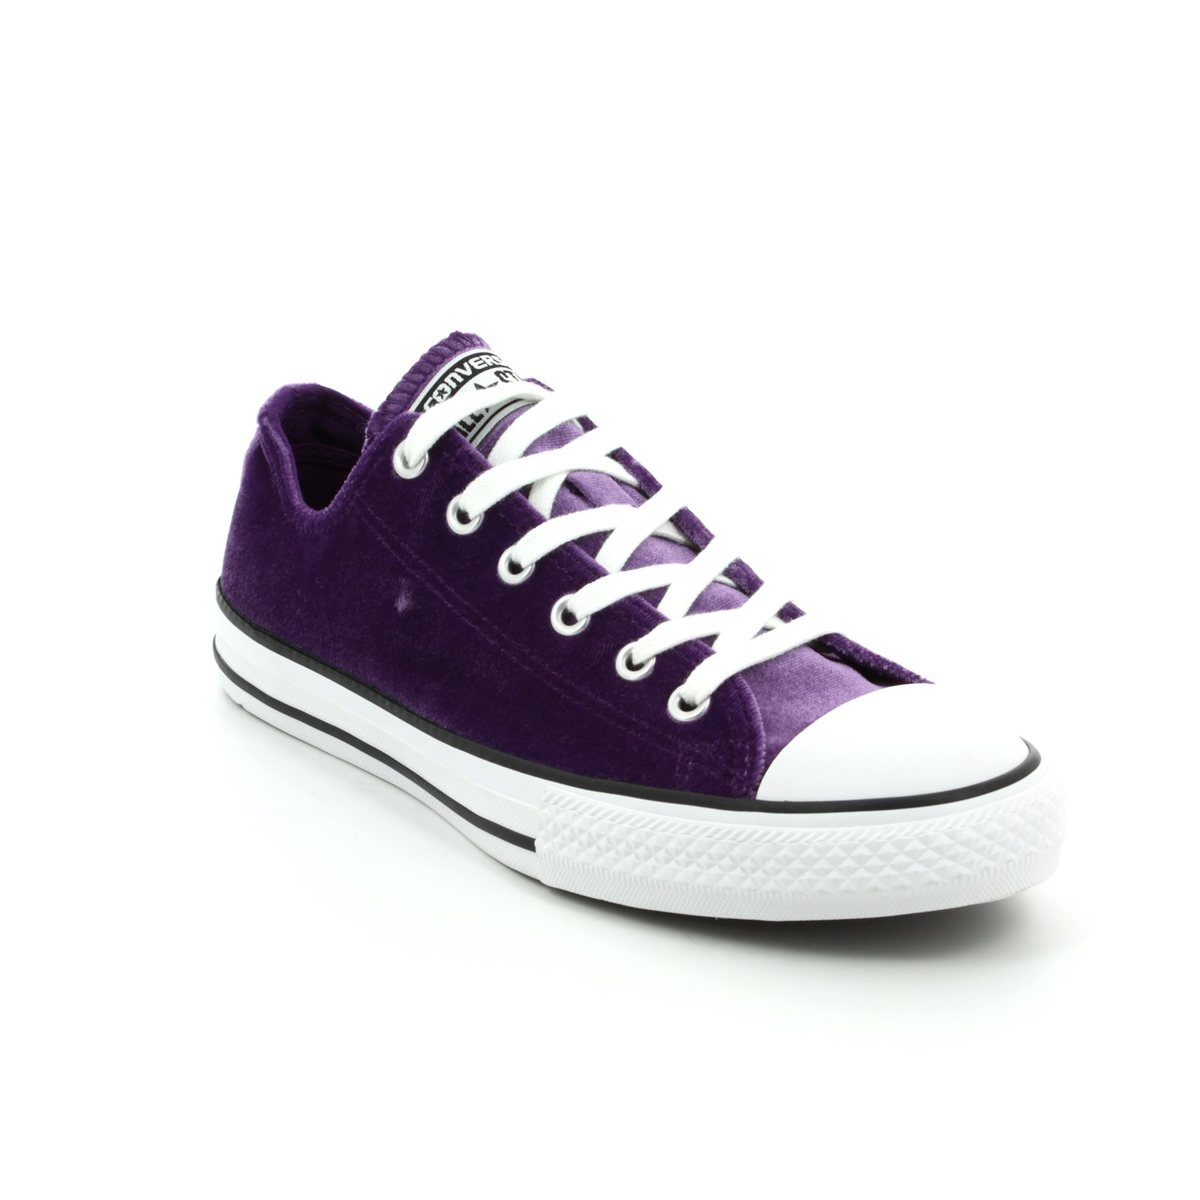 658211c Chuck Taylor All Star Ox Jnr at Begg Shoes & Bags